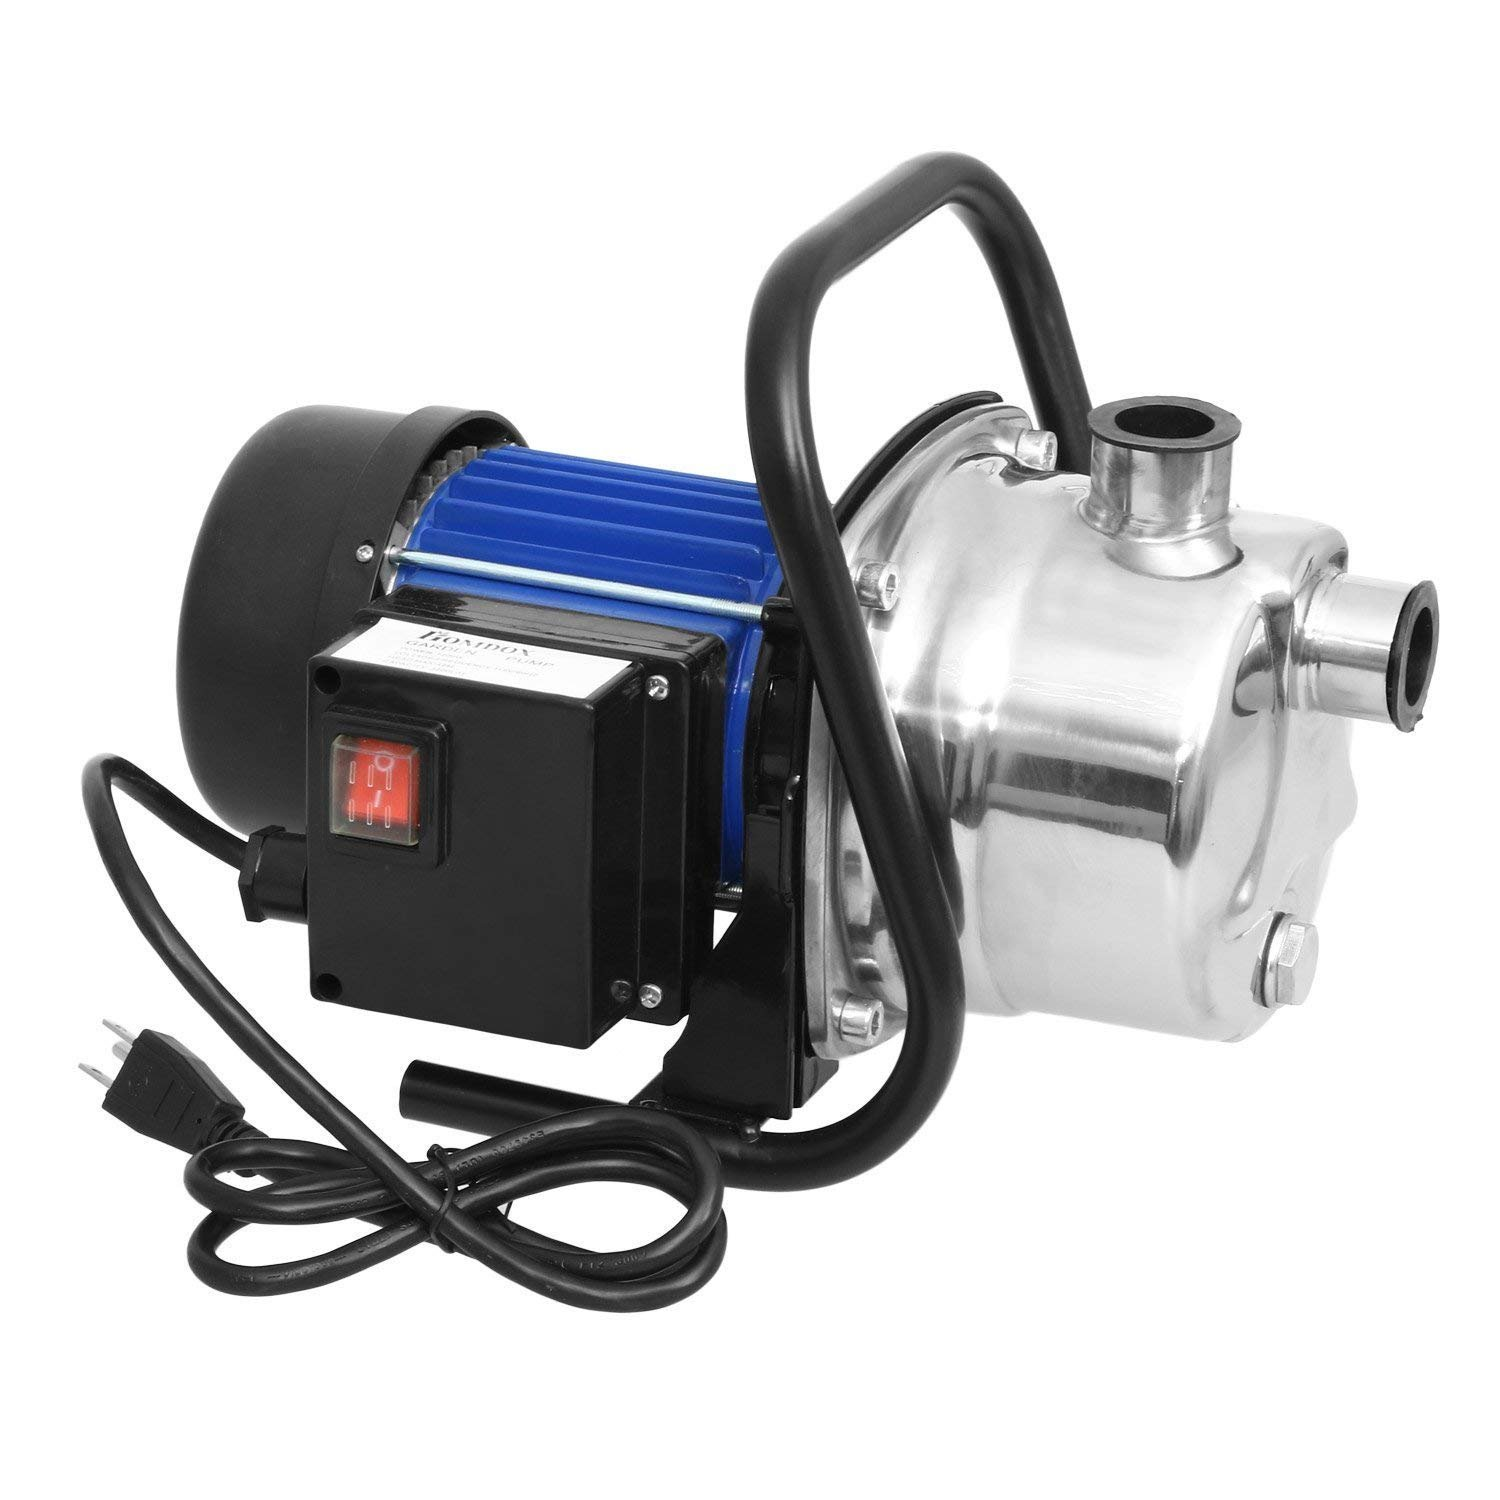 1.6HP Submersible Clean Water Pump Shallow Well Pump Stainless Booster Pump Lawn Water Pump Electric Water Transfer Home Garden Irrigation 115V